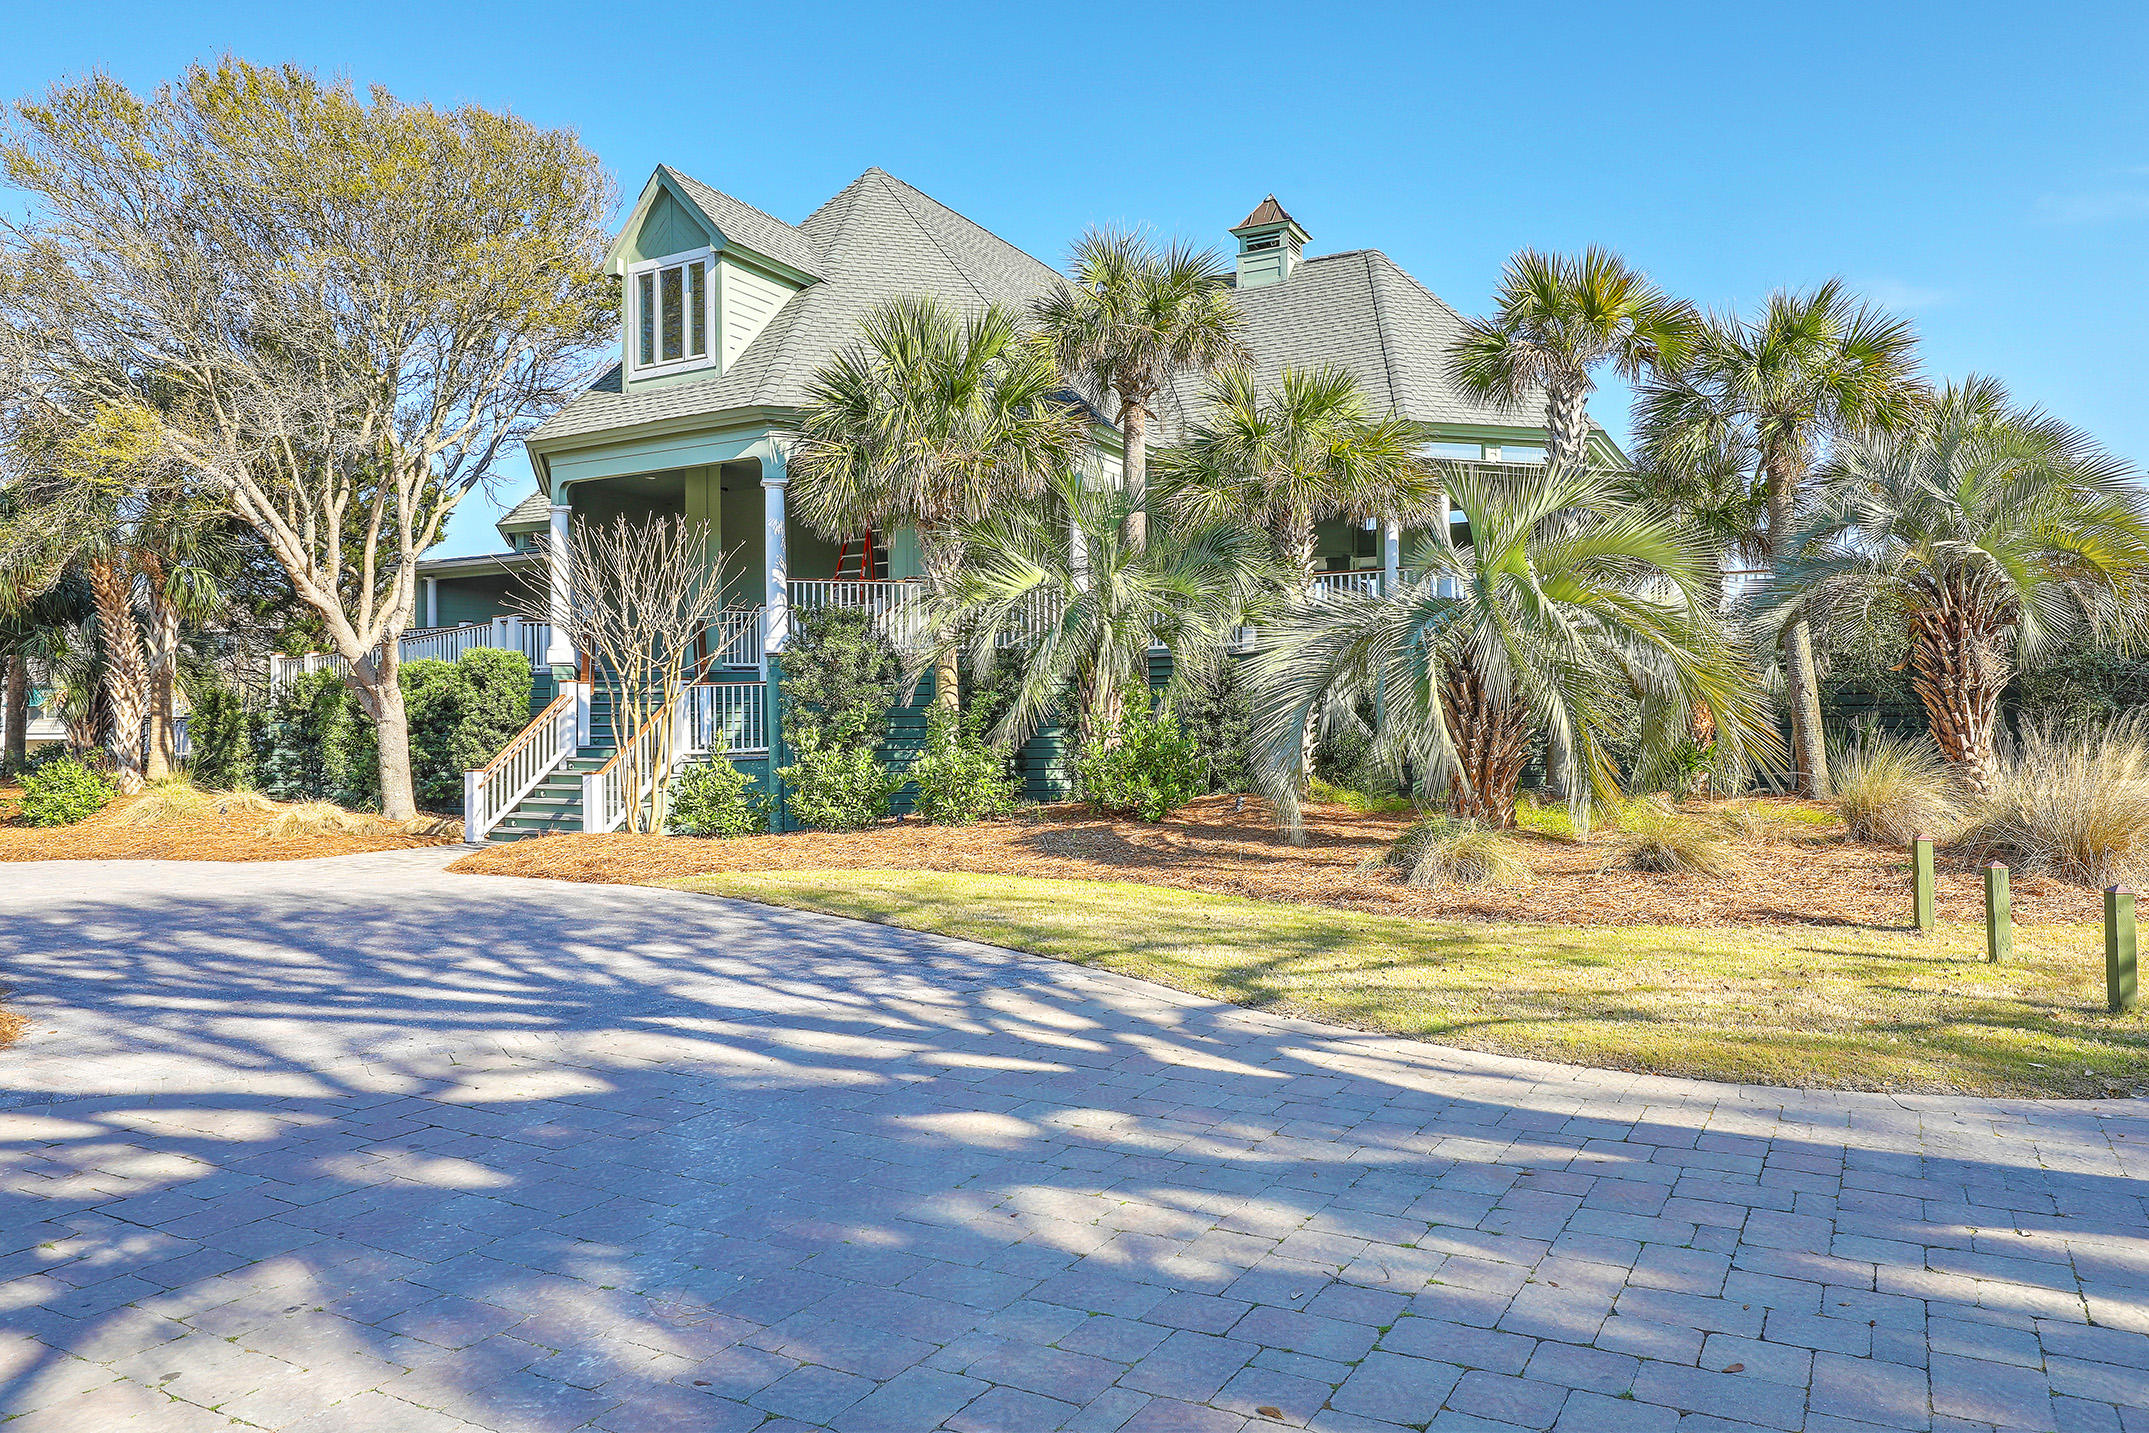 Wild Dunes Homes For Sale - 404 Summerhouse, Isle of Palms, SC - 38